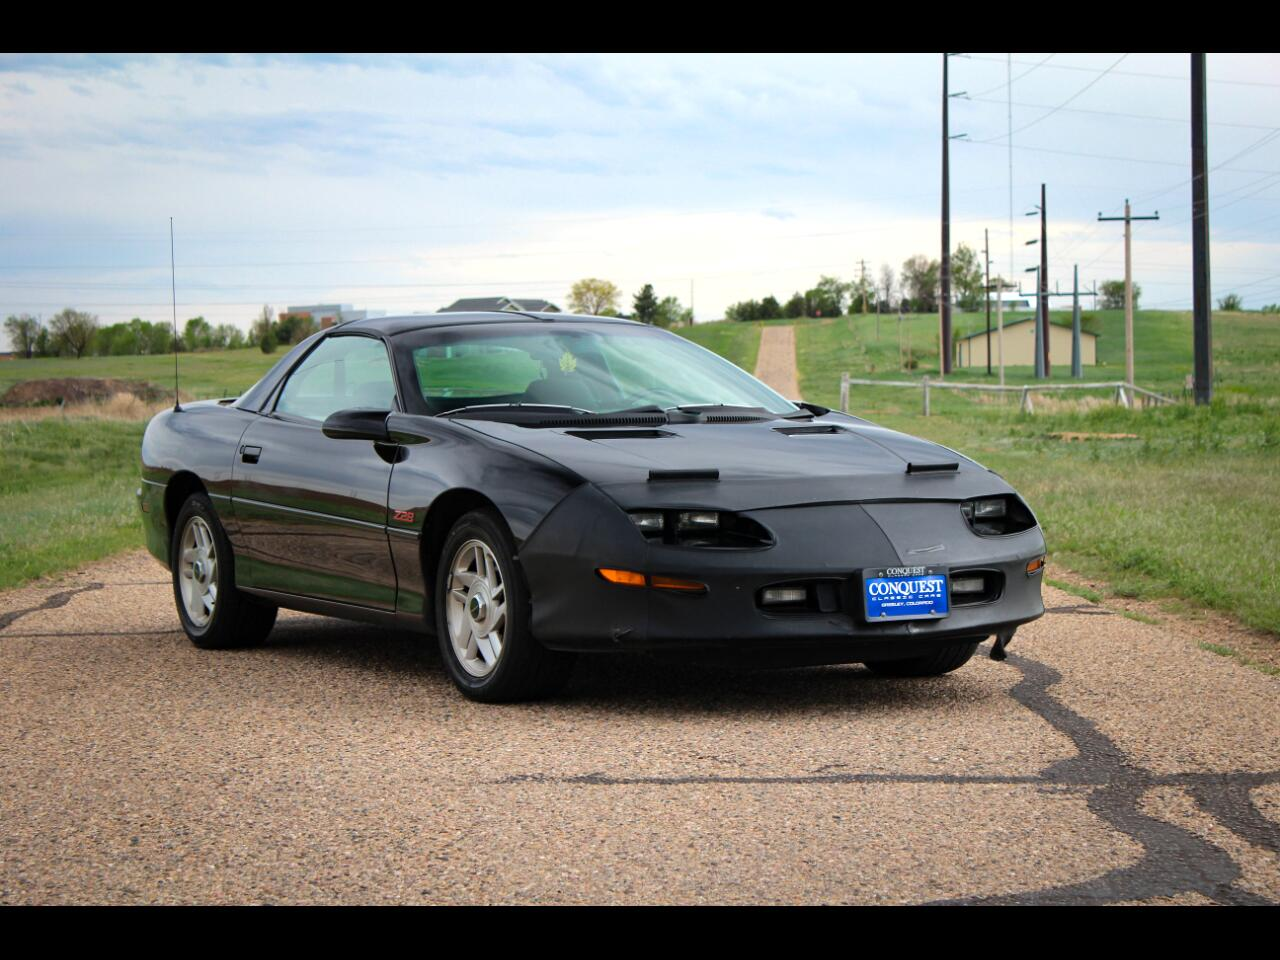 1993 Chevrolet Camaro Z28 Coupe